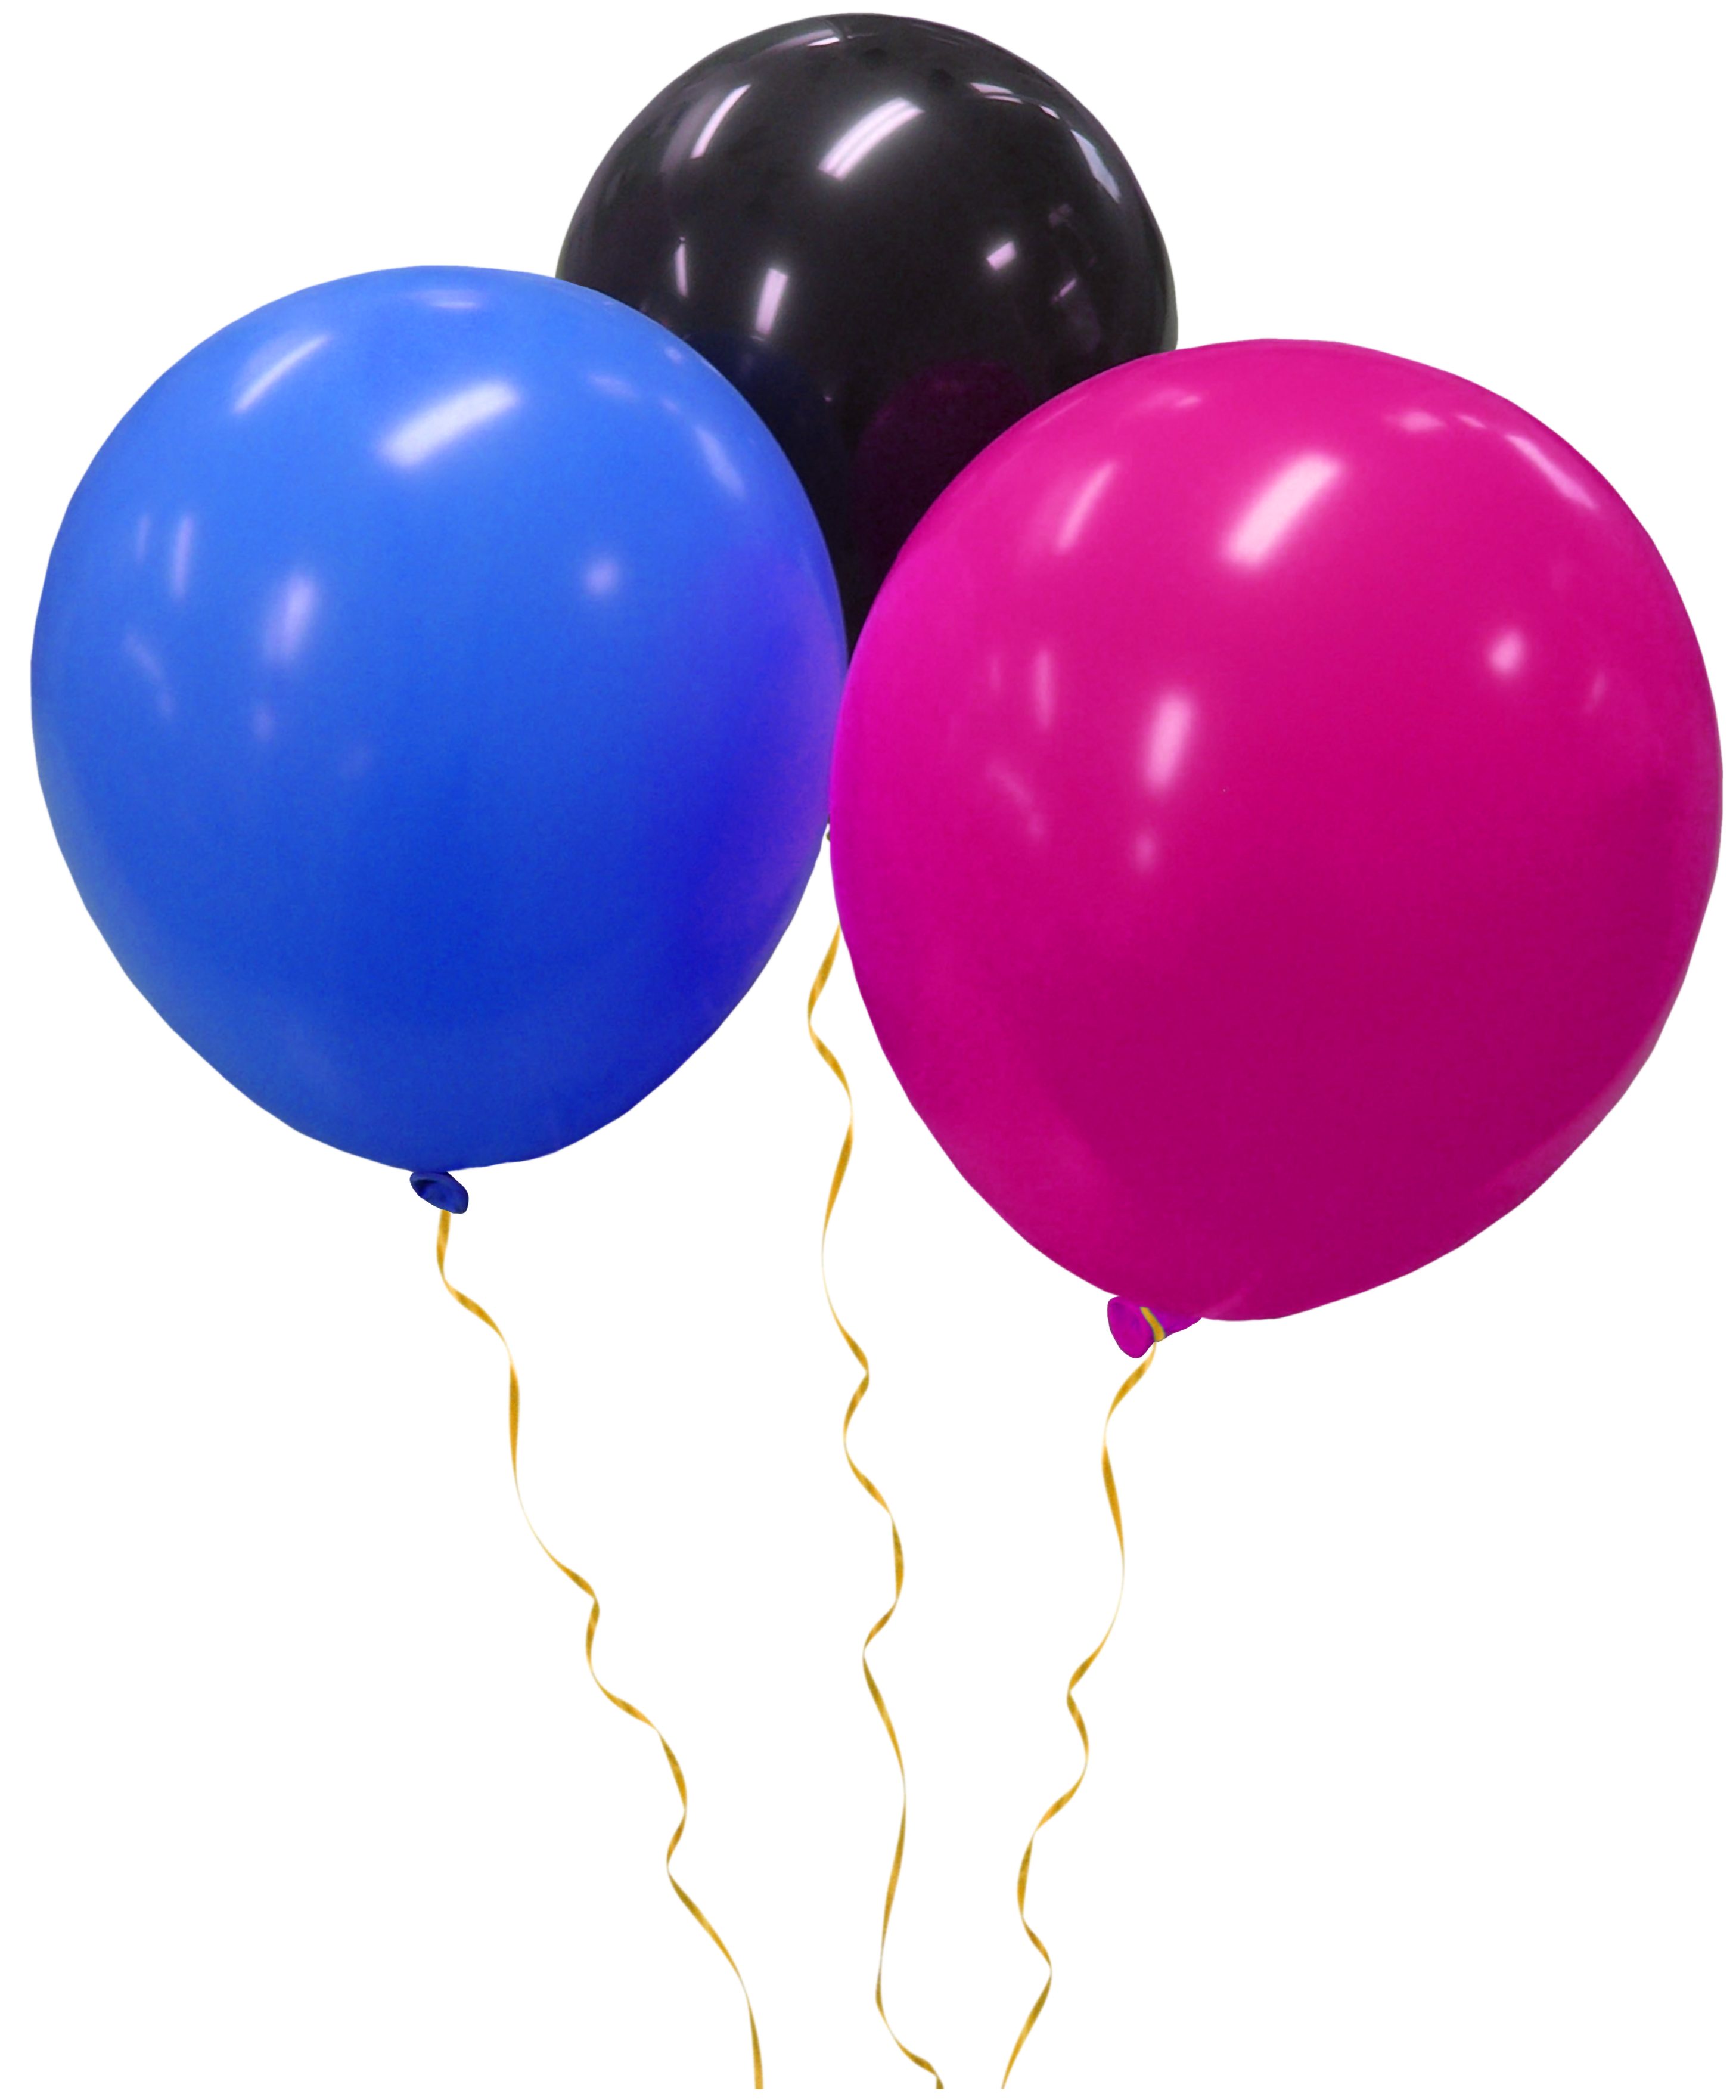 2913x3523 3 Photo Of 117 For Balloon Clipart Transparent My Pins